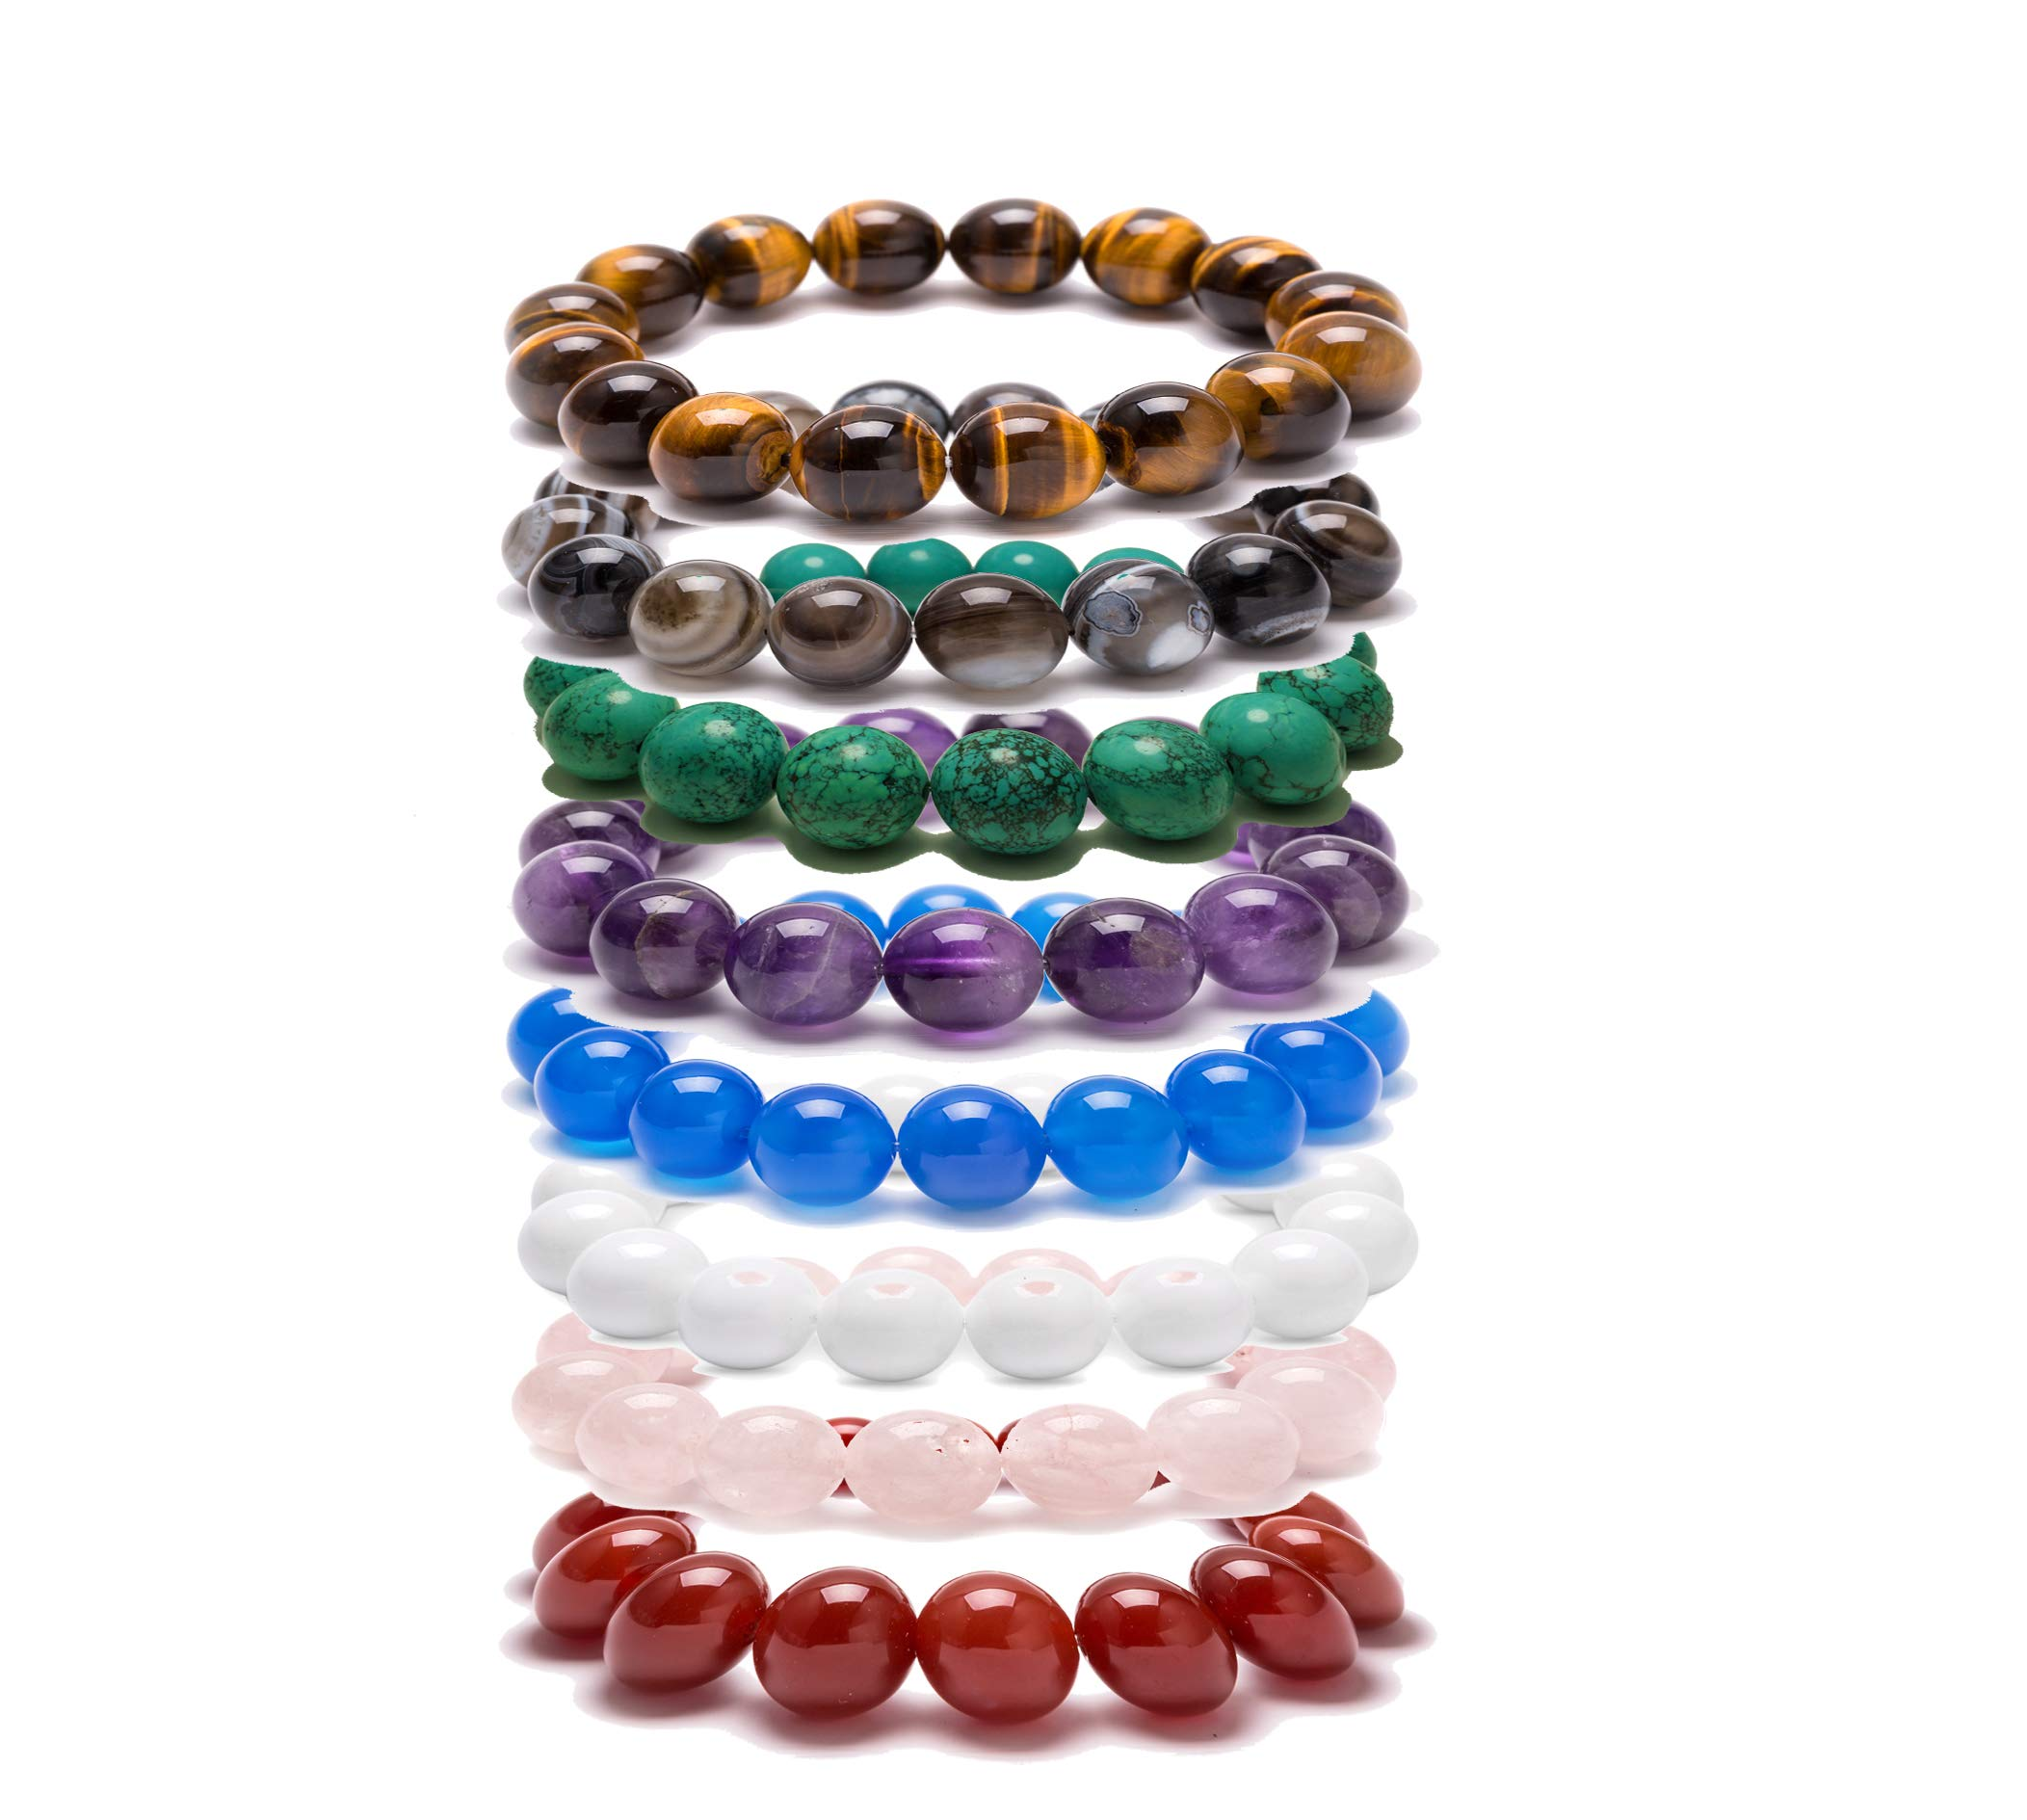 FAR SELECTIONS Agate Beads Bracelet in Leather Jewelry Box Set Clear 12mm Beads Bracelet DIY with Beading Threads Set 8 color with a White Jewelry Box (8 color bracelet)